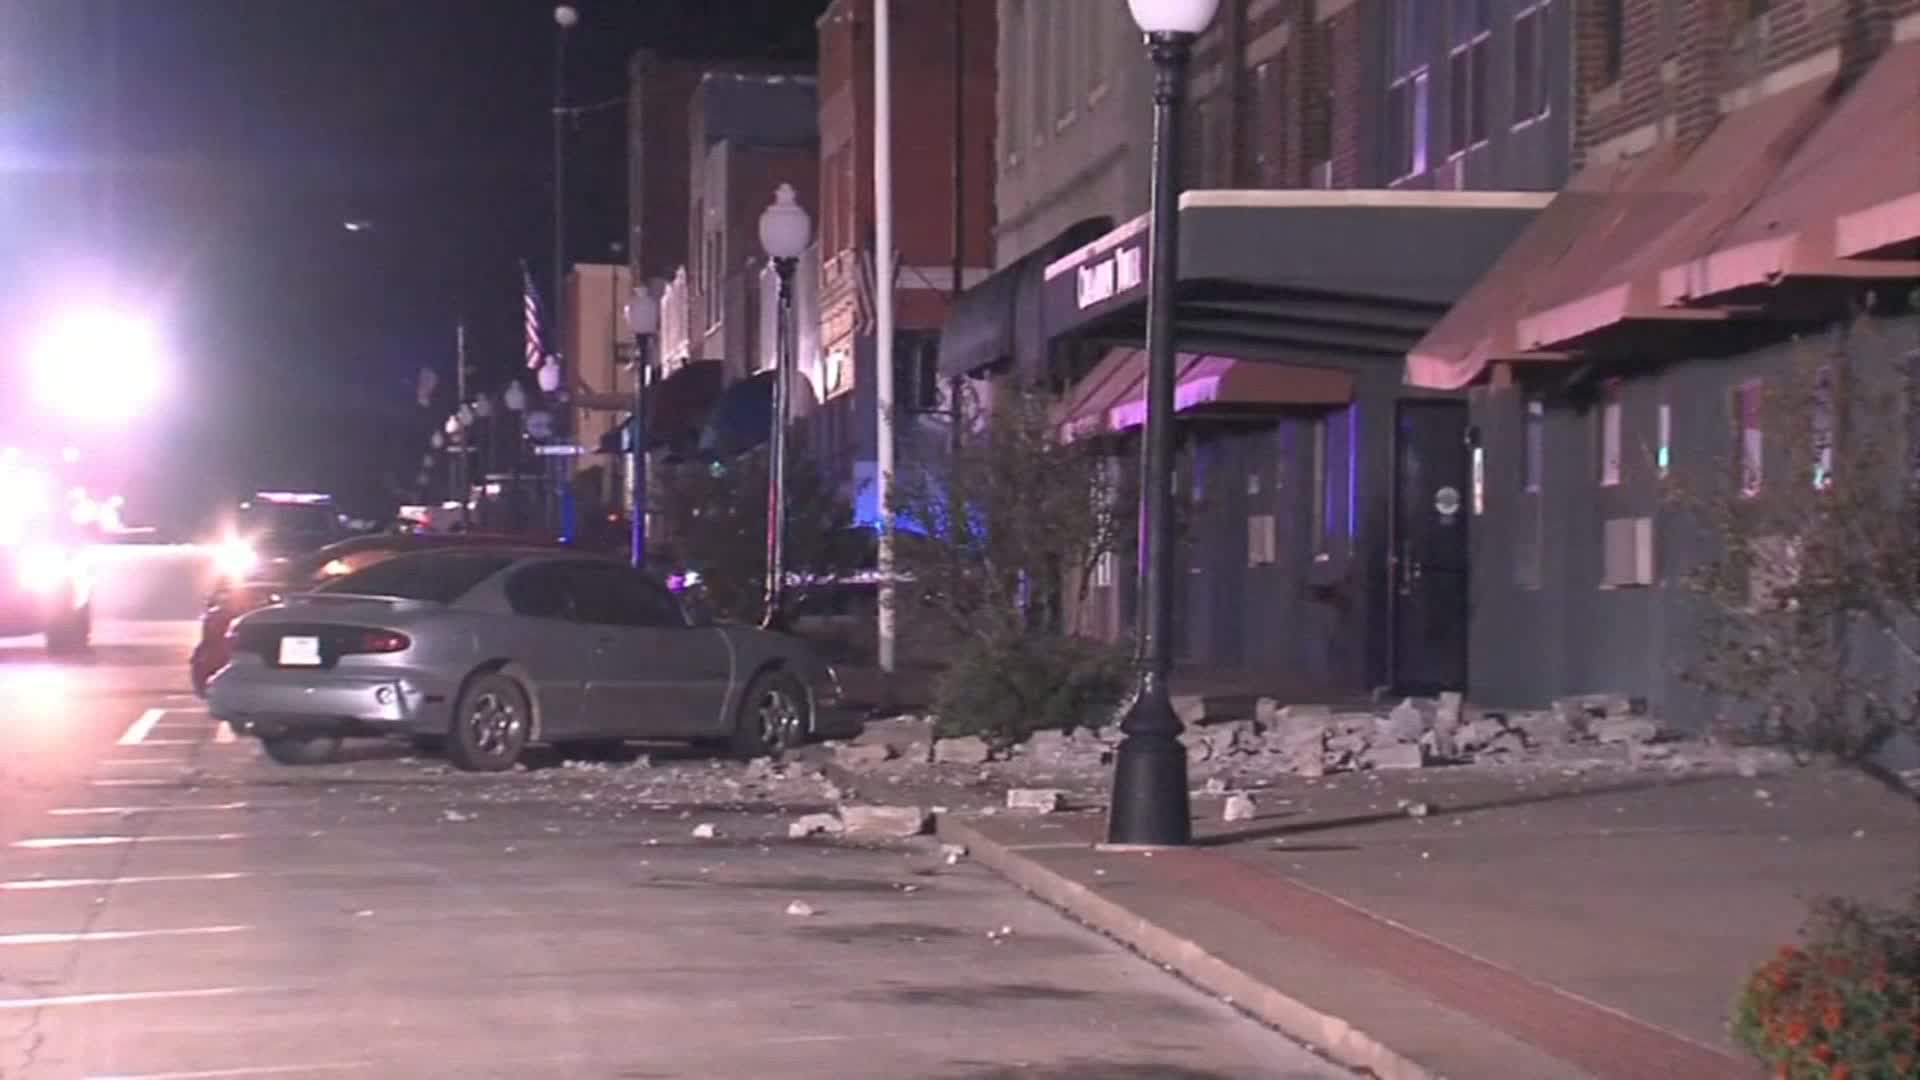 Cushing City Manager Steve Spears said 40 to 50 buildings were damaged in Sunday's earthquake, which was the third in Oklahoma this year with a magnitude of 5.0 or greater.